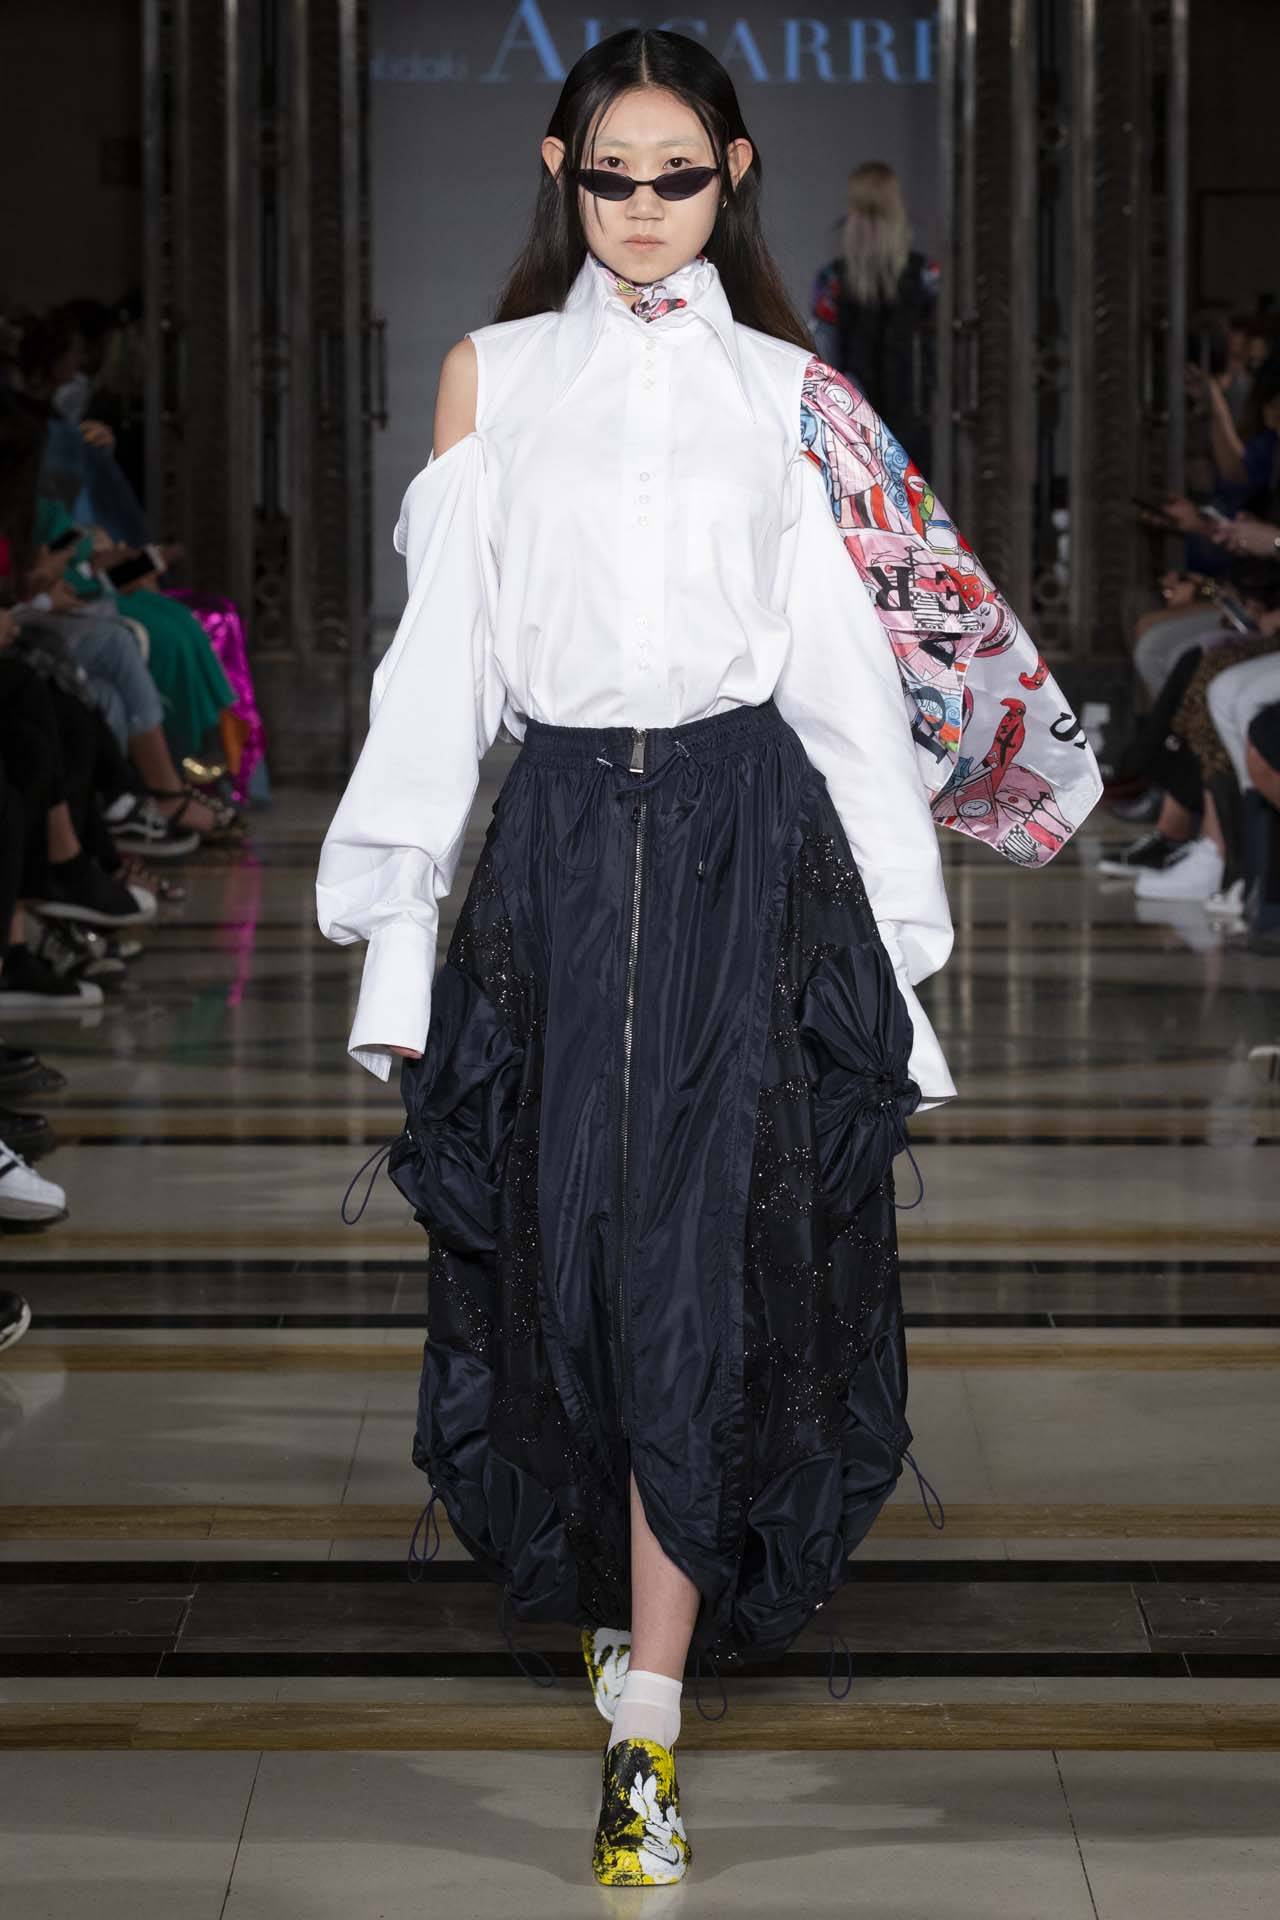 Fashion scout ss19 ones to watch aucarre (2)